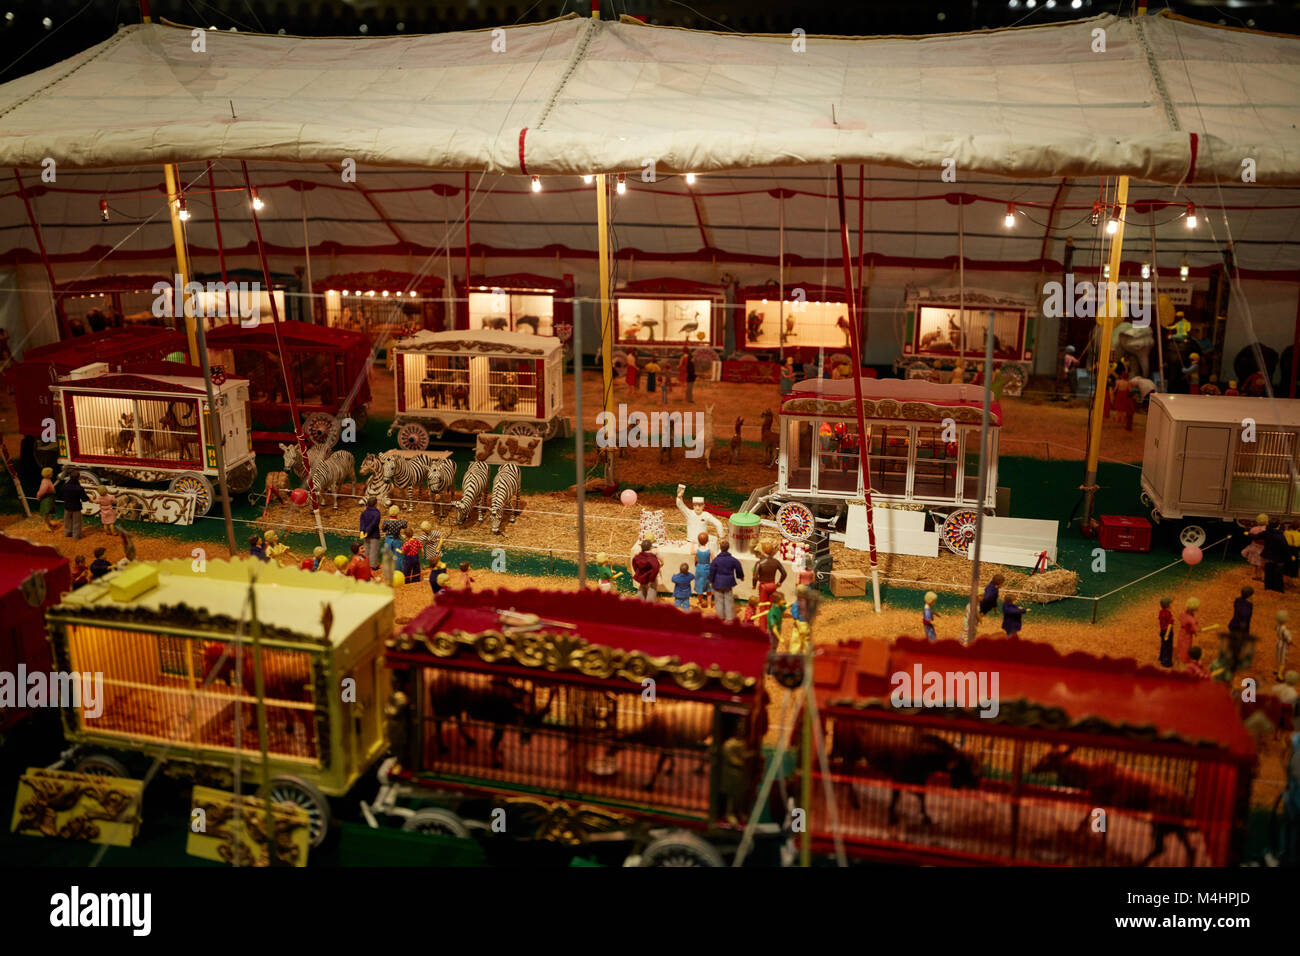 Inside the tents of Howard Tibbalu0027s miniature circus display & Inside the tents of Howard Tibbalu0027s miniature circus display Stock ...